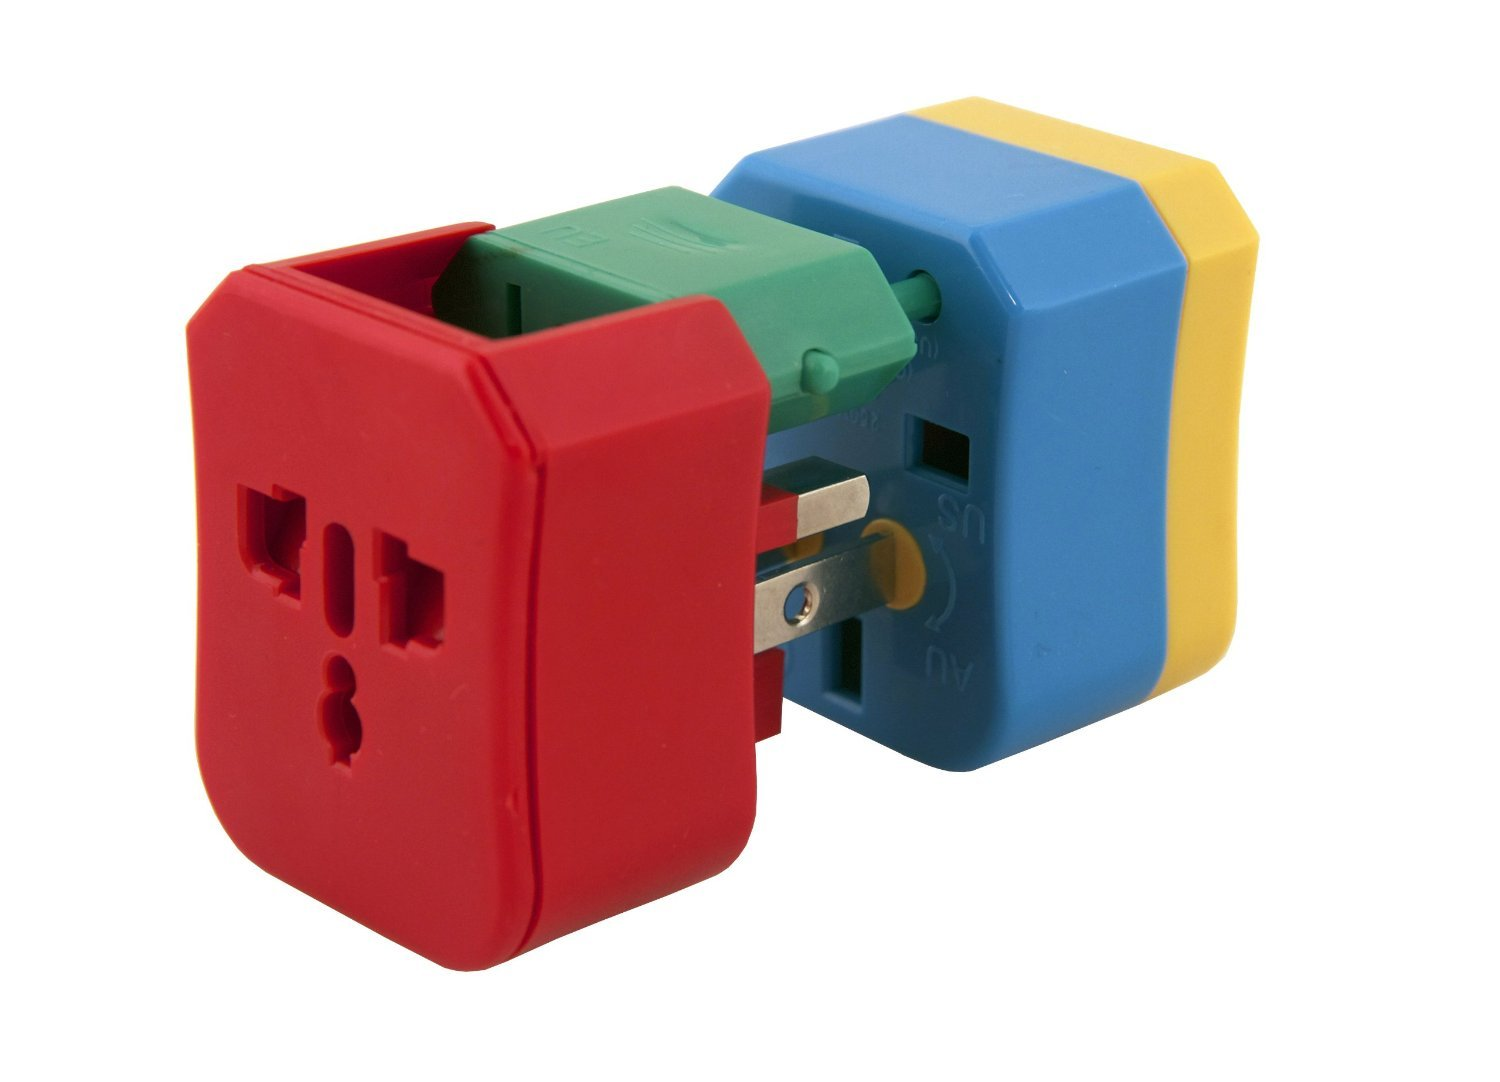 Travel Adapter Amazon Flight 001 4 In 1 Adapter